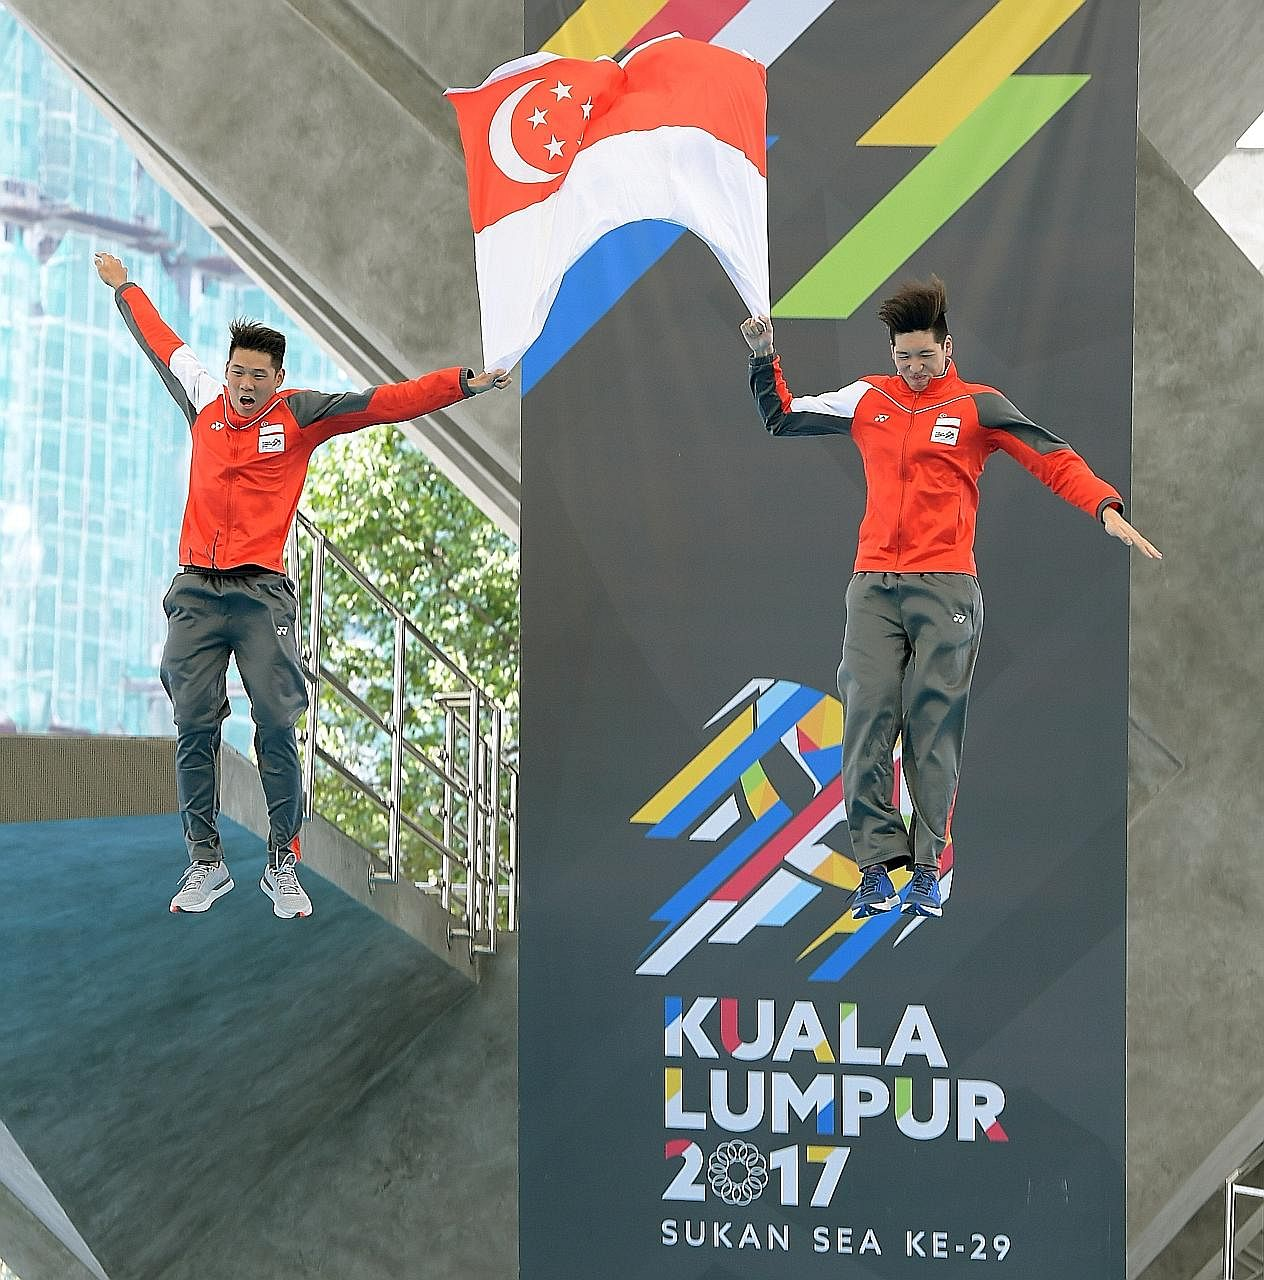 SEA Games water polo debutants Chow Jing Lun (left) and Yu Junjie jumping from the diving platform while holding the Singapore flag after winning the gold at Kuala Lumpur's National Aquatic Centre. It is a tradition for players making their Games bow